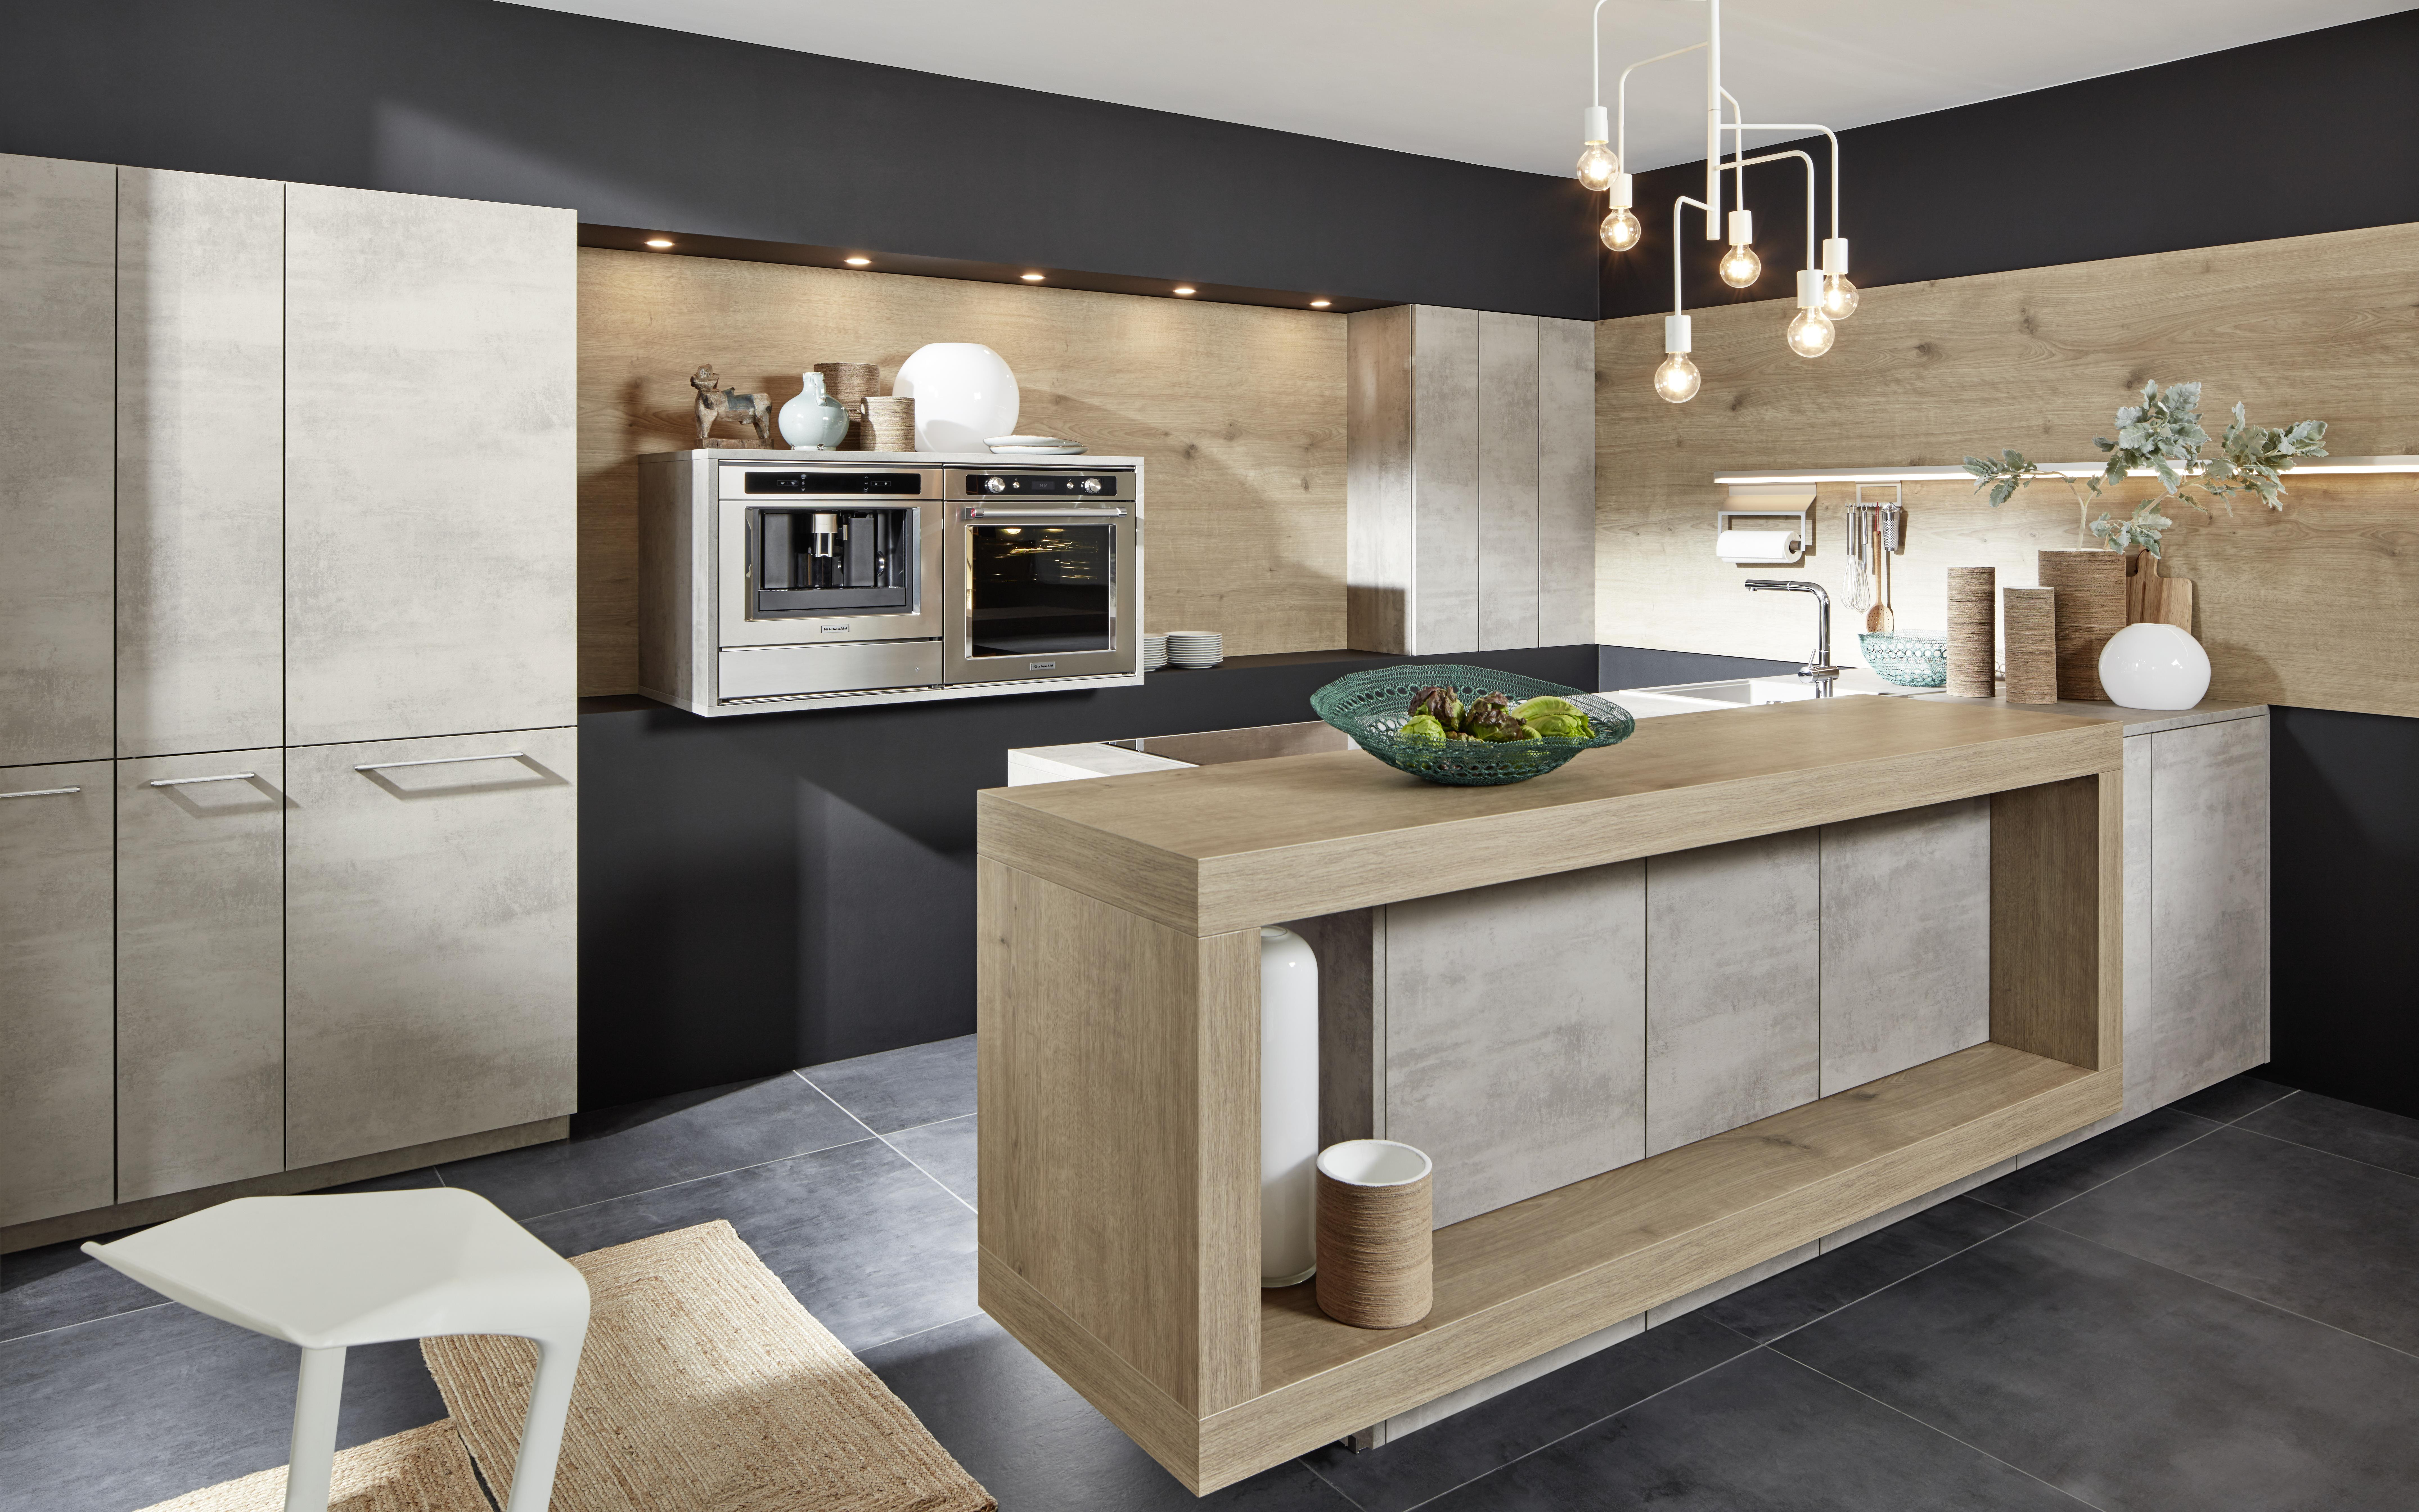 Modern Kitchen Design With Concrete Look And Wood Nolte Kuechen Com